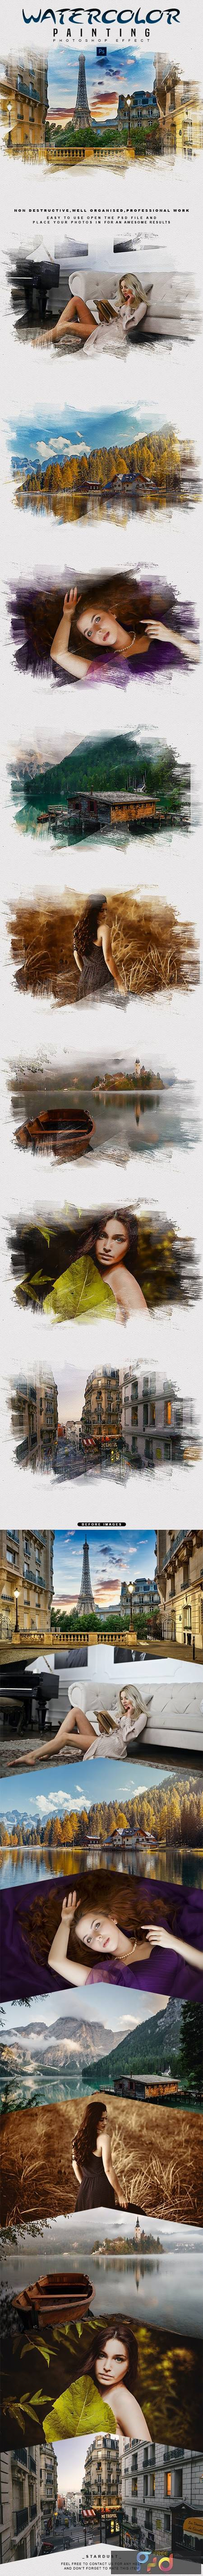 Watercolor Painting - Photoshop Effect 28936851 1